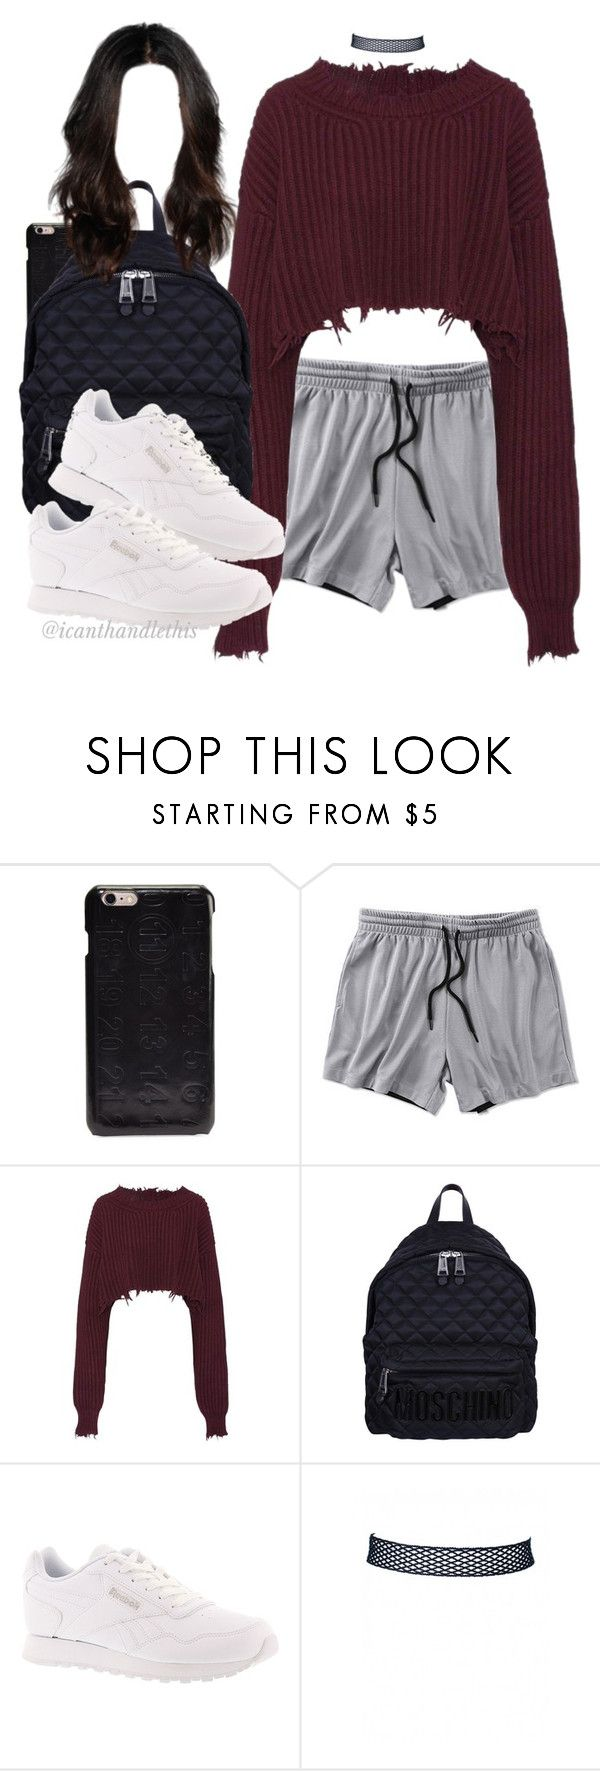 """Era - Ameno (LBLVNC Remix)"" by icanthandlethis ❤ liked on Polyvore featuring Maison Margiela, Unravel, Moschino and Reebok"